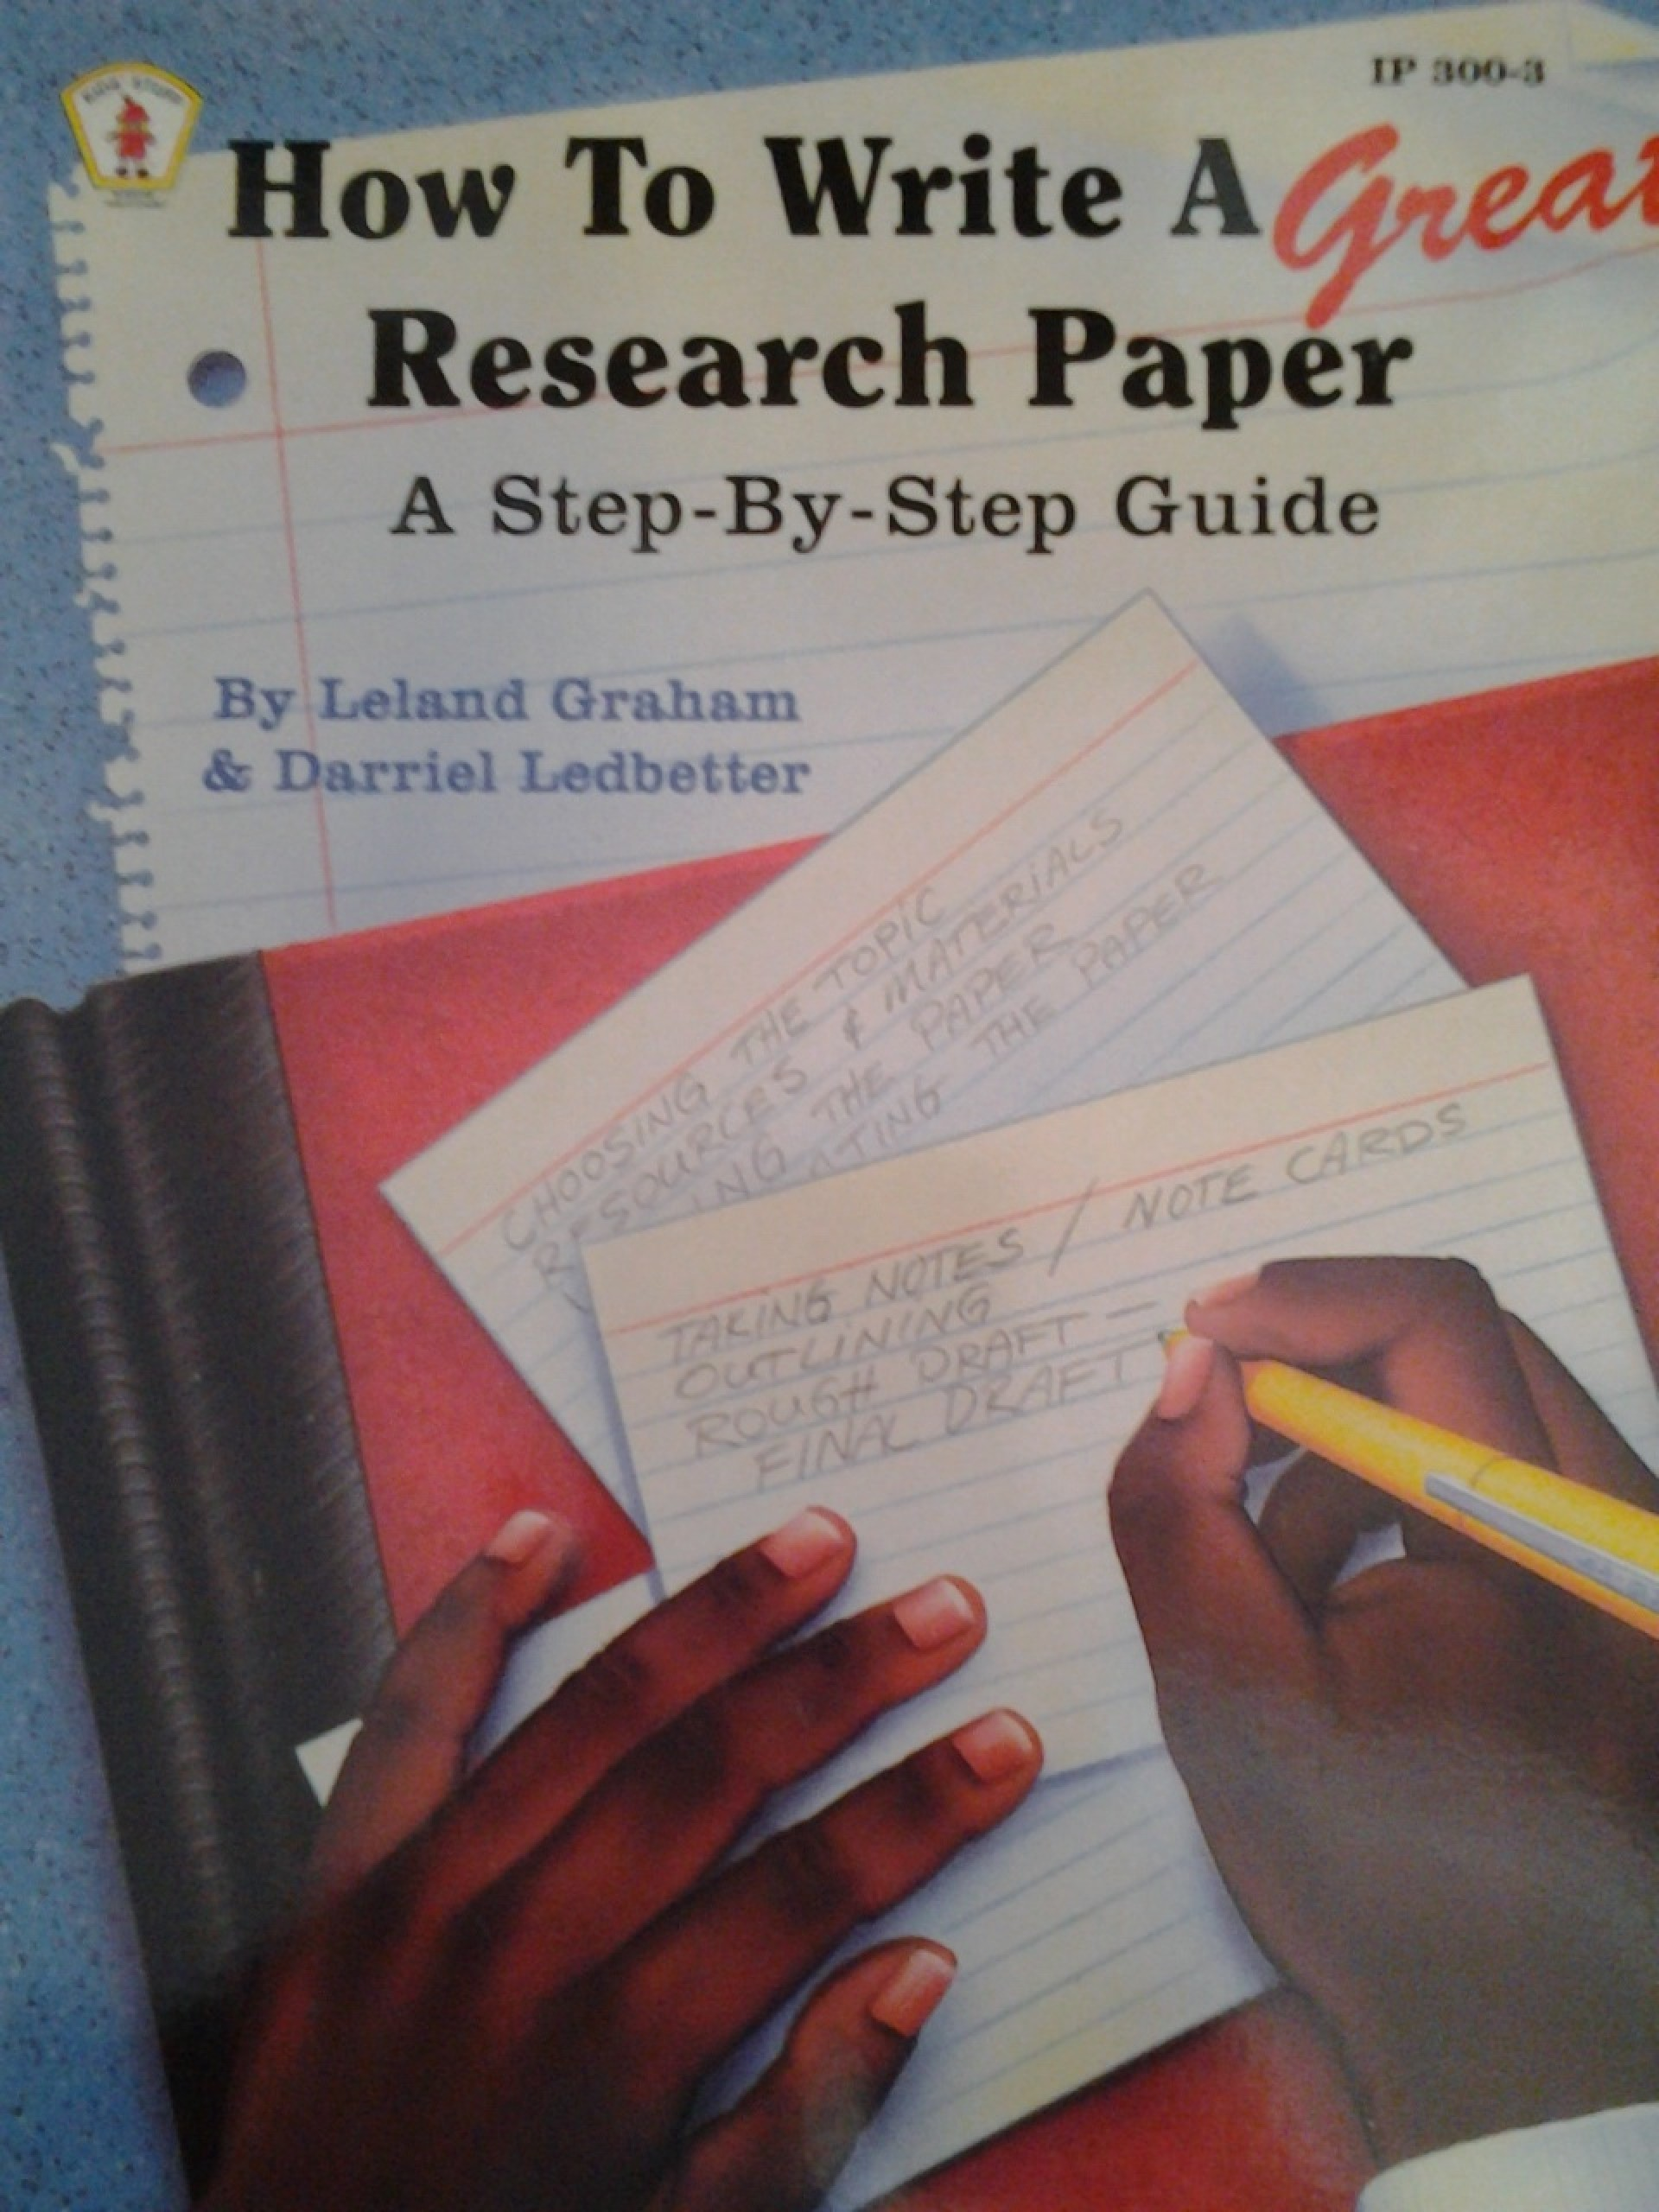 004 Img 20171008 144602 How To Write Great Research Paper Best A Book Good On 1920